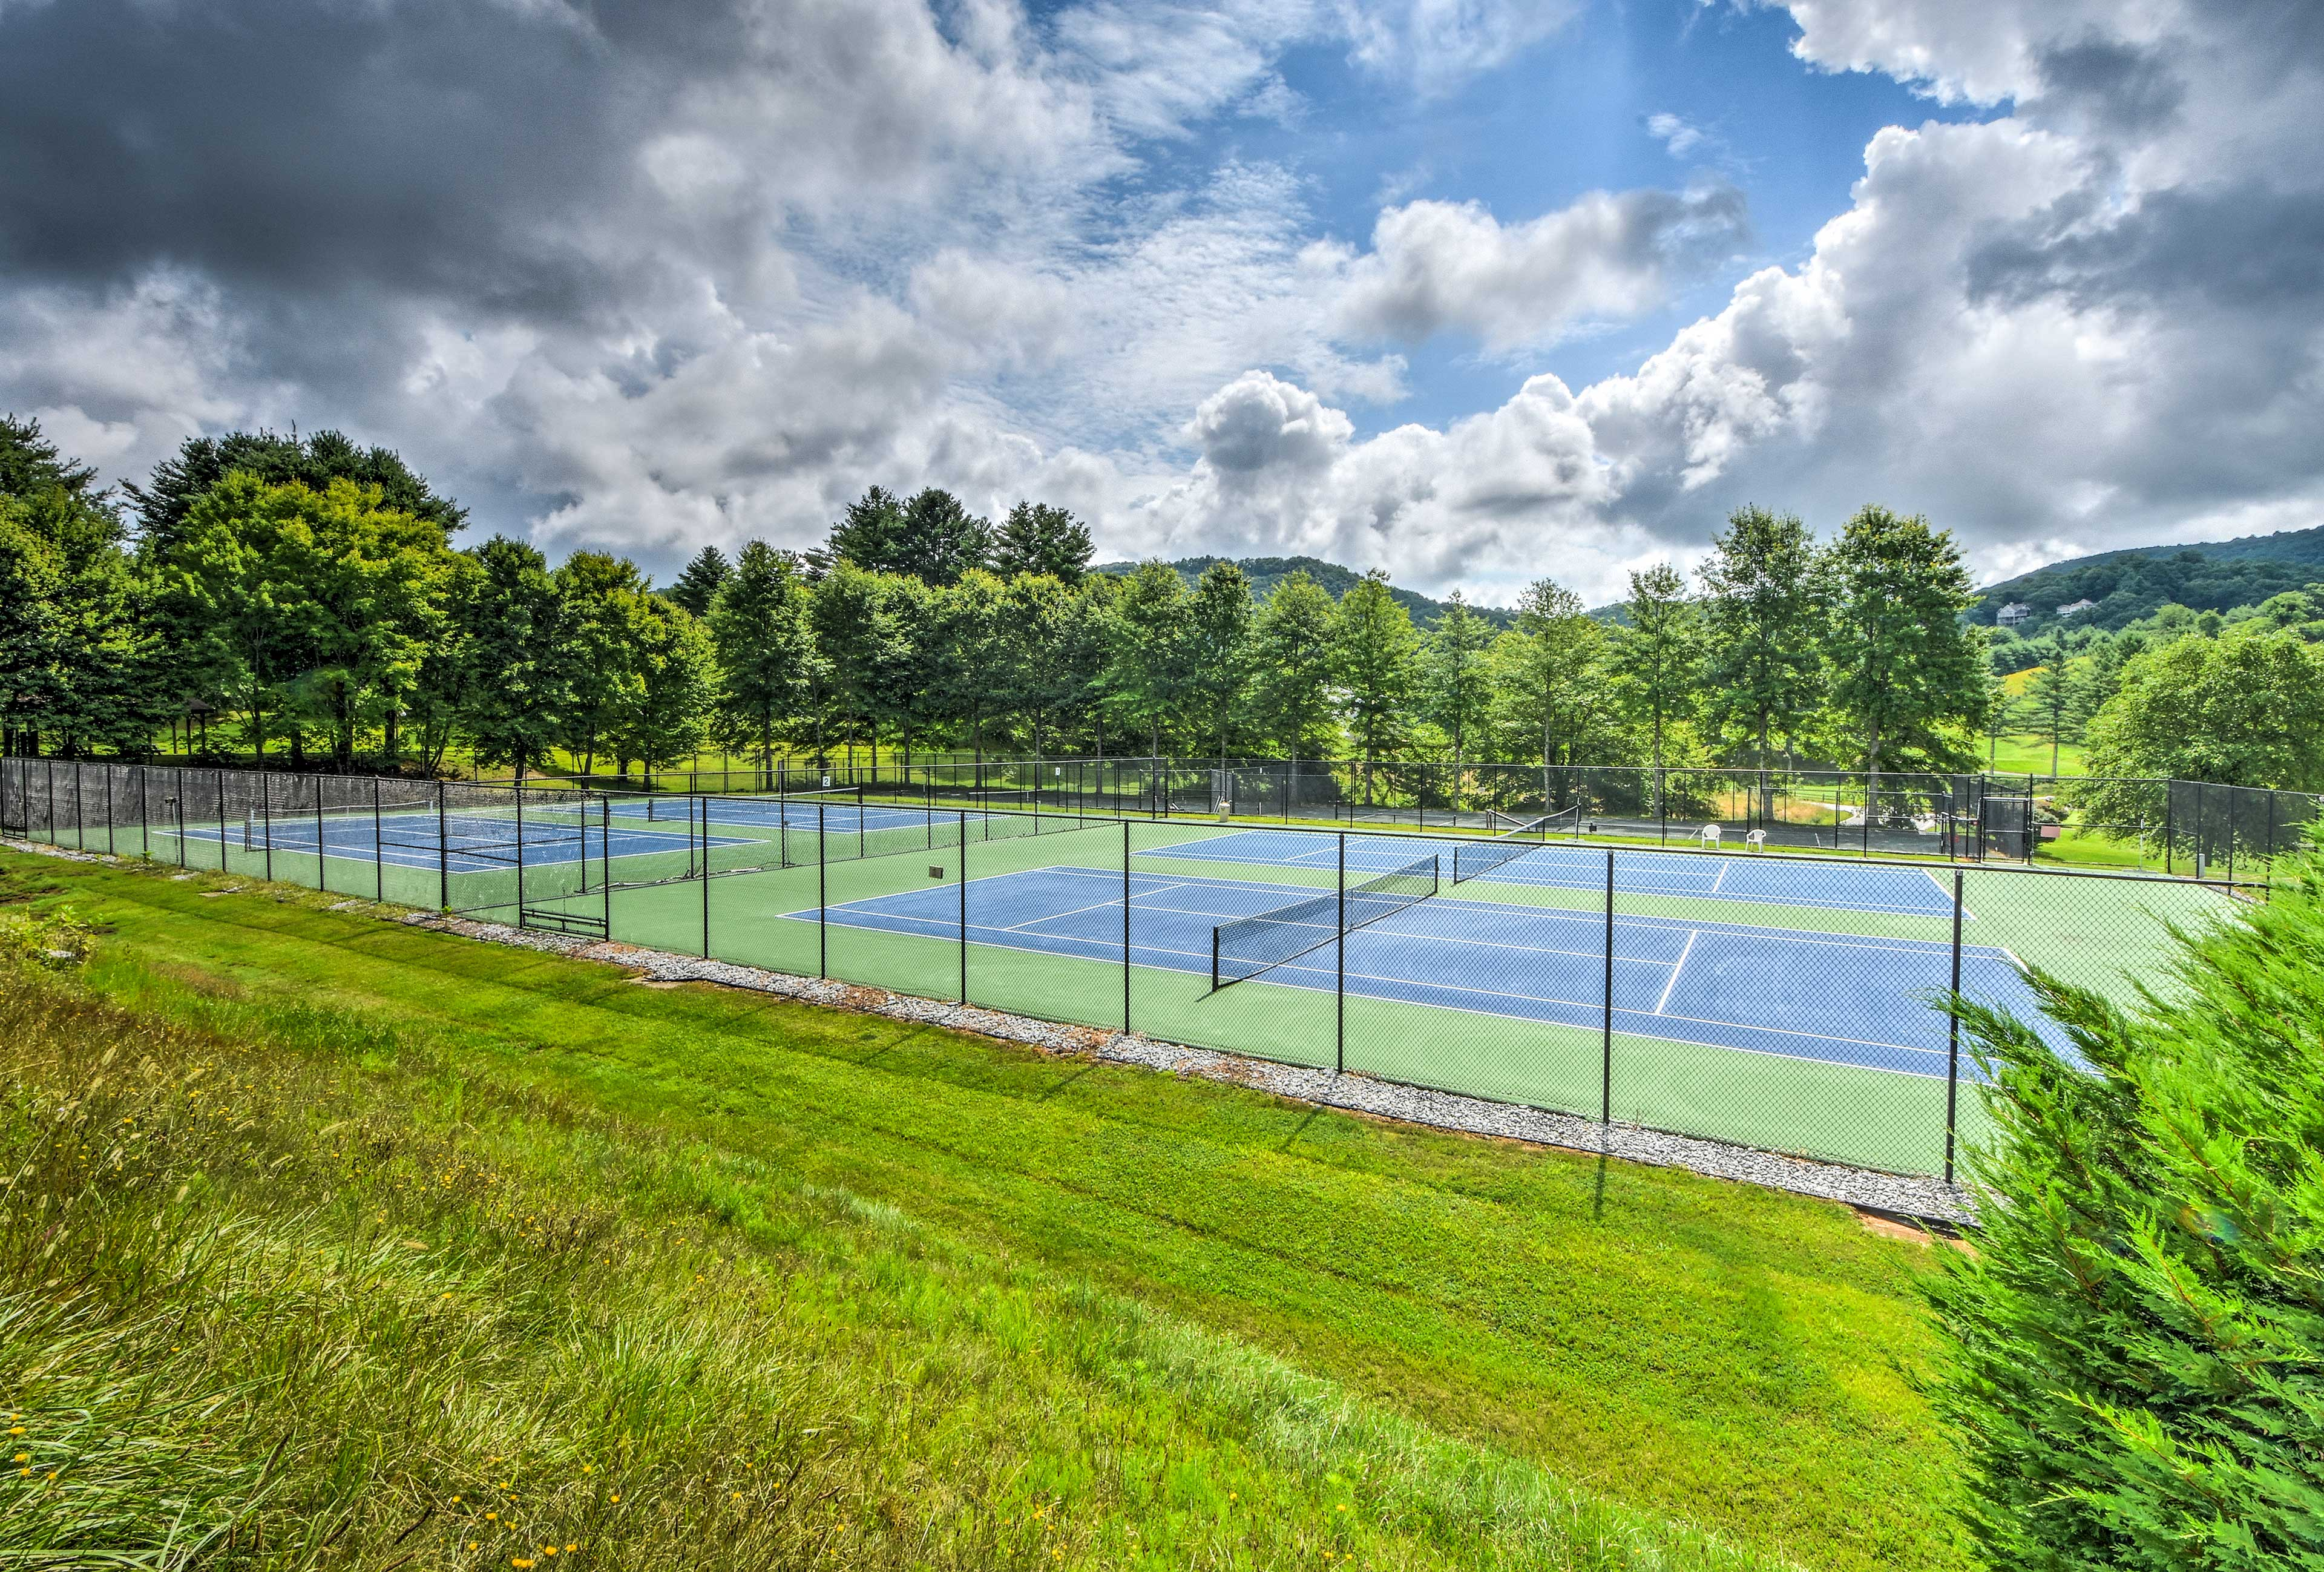 Warm up with a friendly game of tennis.